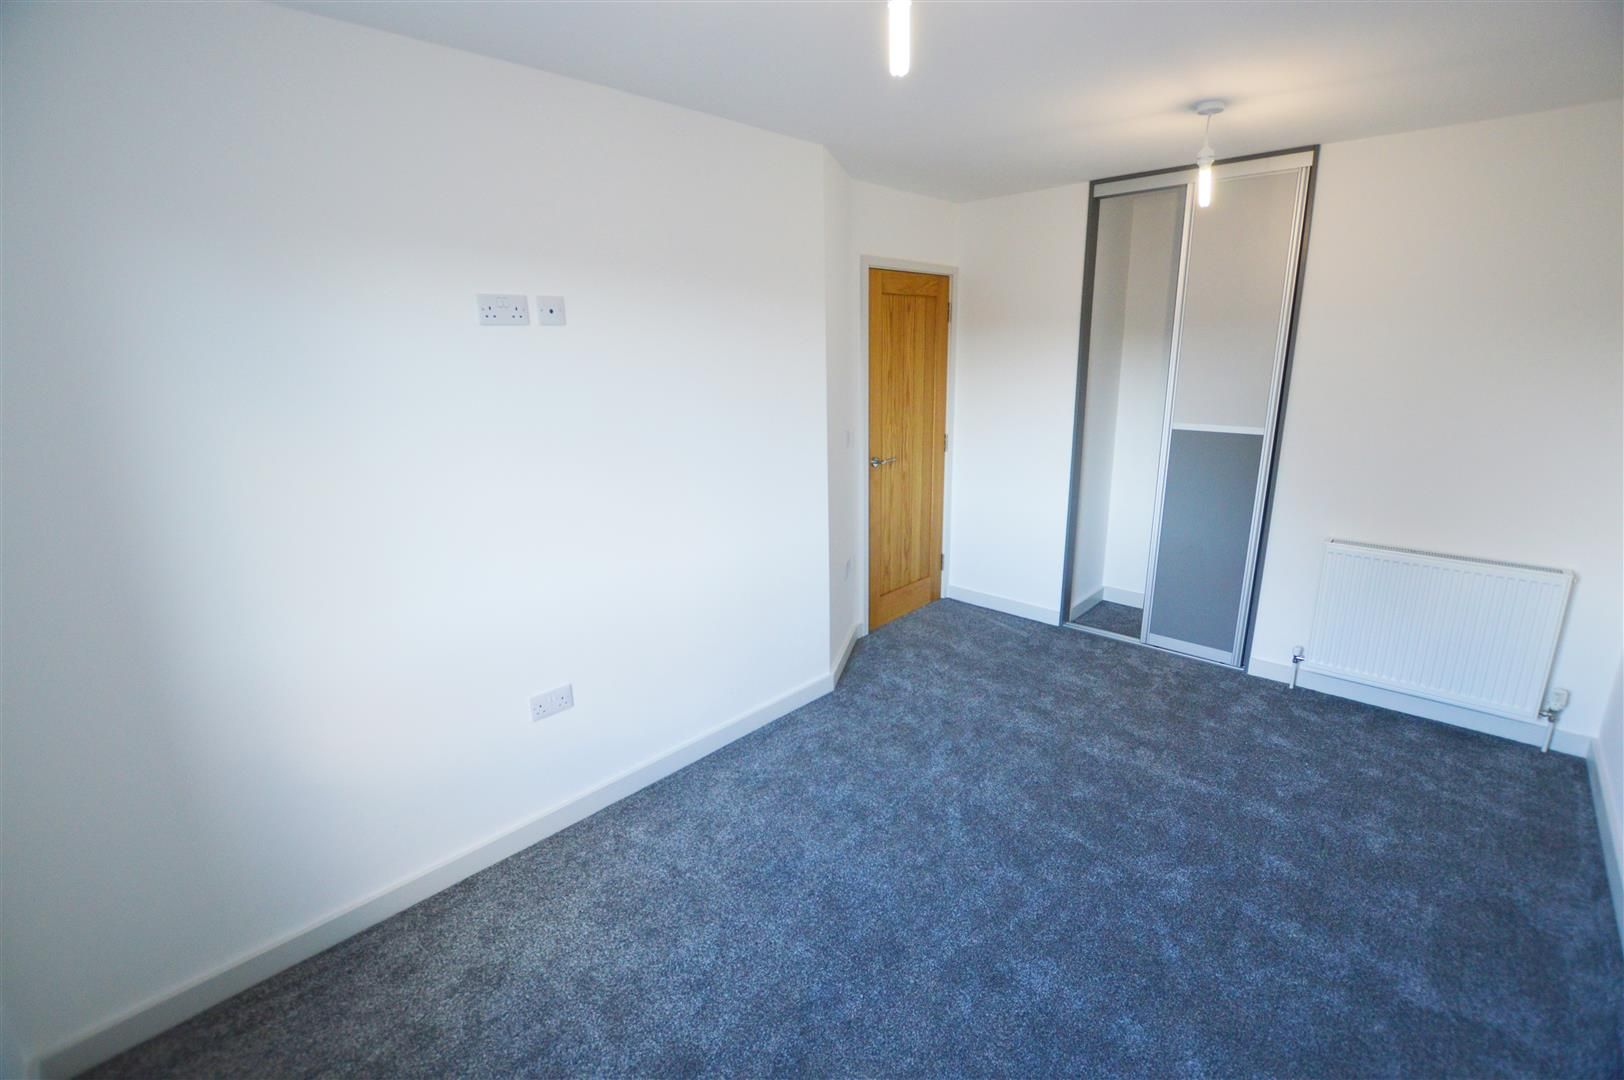 3 bed end-of-terrace for sale in Leominster  - Property Image 6